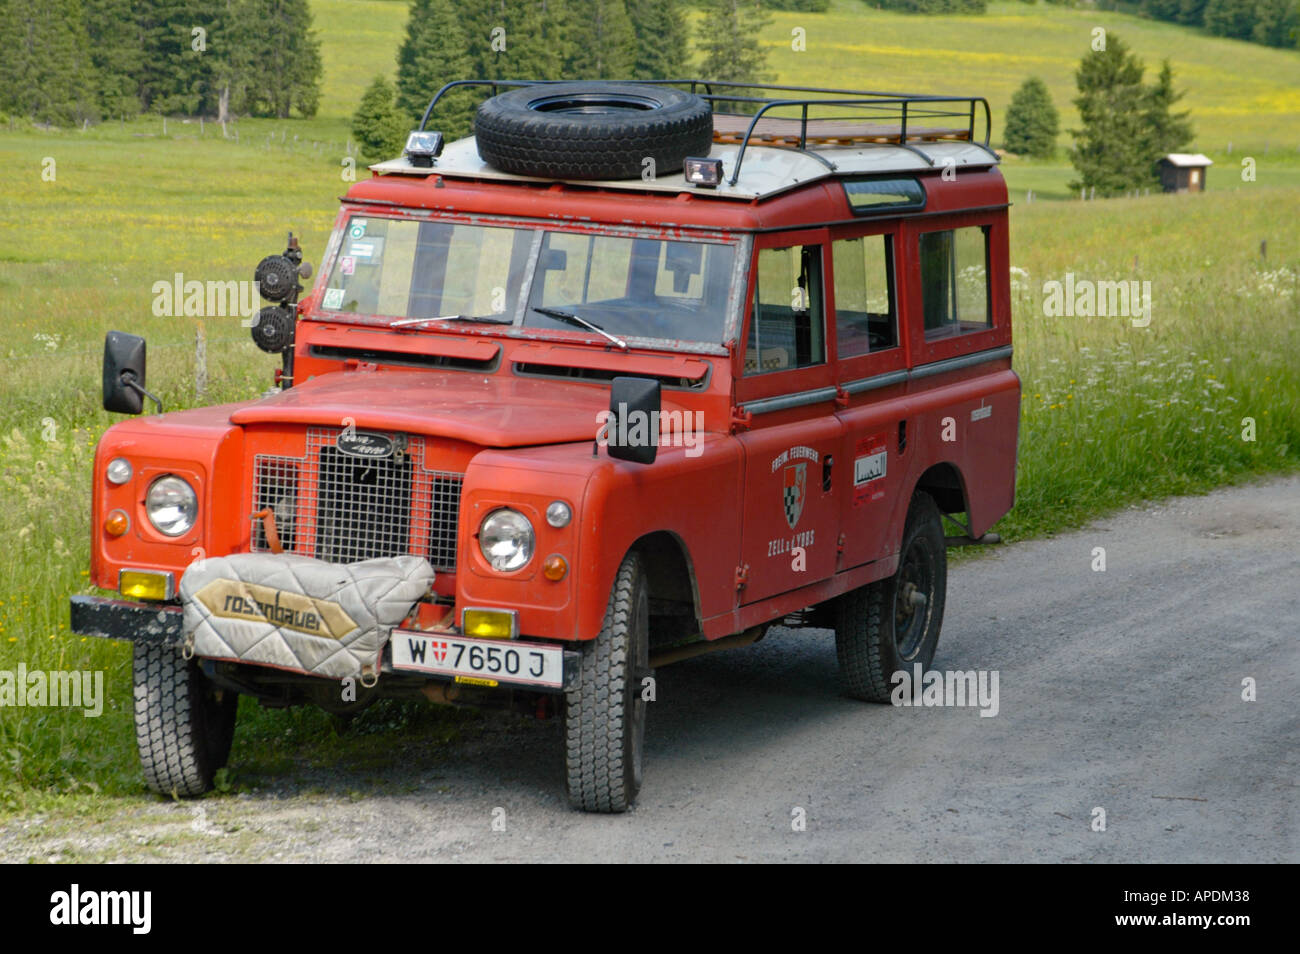 Land Rover Serie 2a 109 Station Wagon LWB as an austrian fire engine